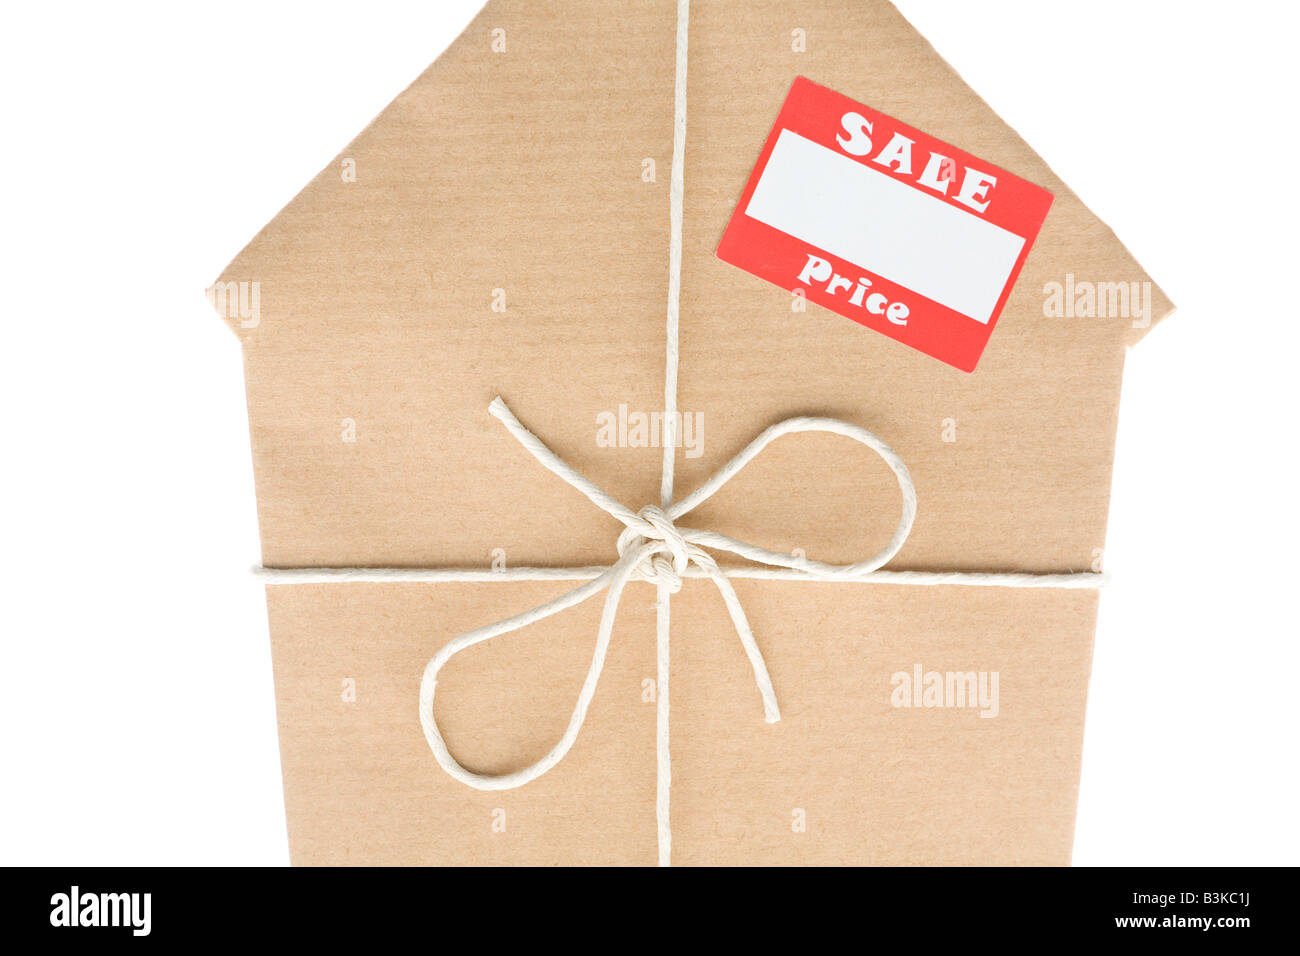 Studio Shot Of House Wrapped In Brown Paper With Sale Sticker - Stock Image